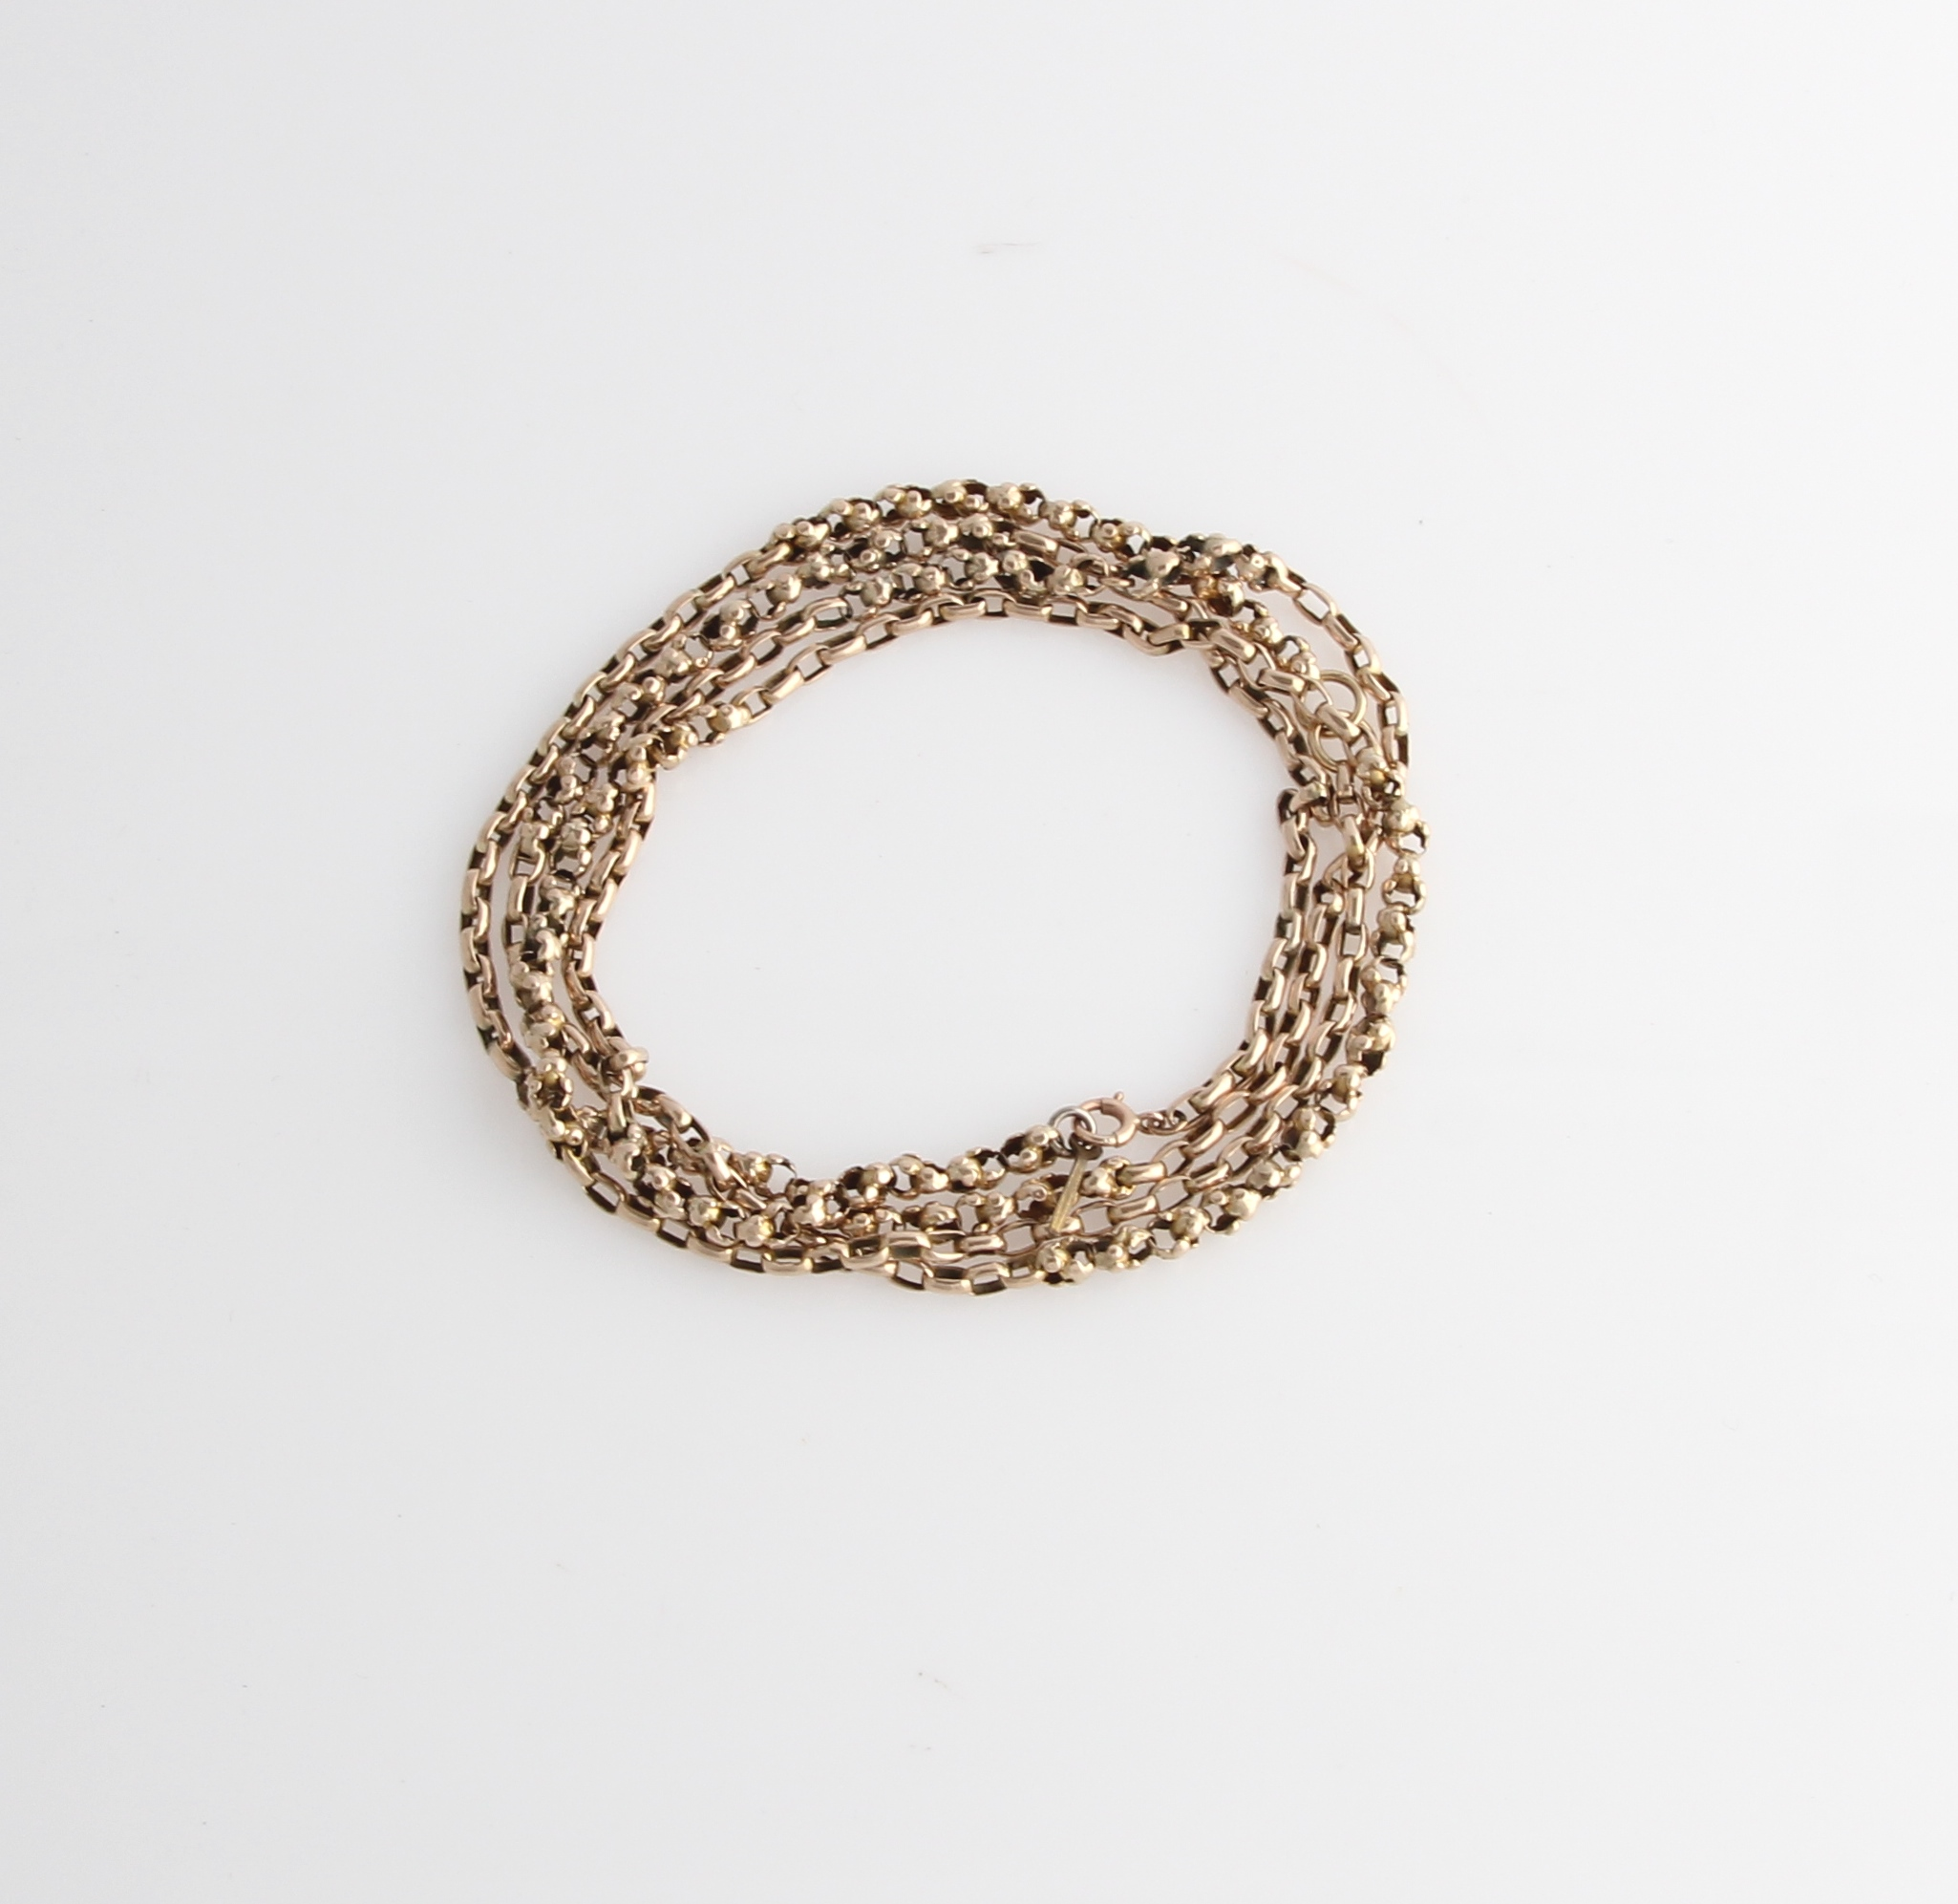 Lot 58 - A belcher link guard chain, featuring alternate sections of two different style links.